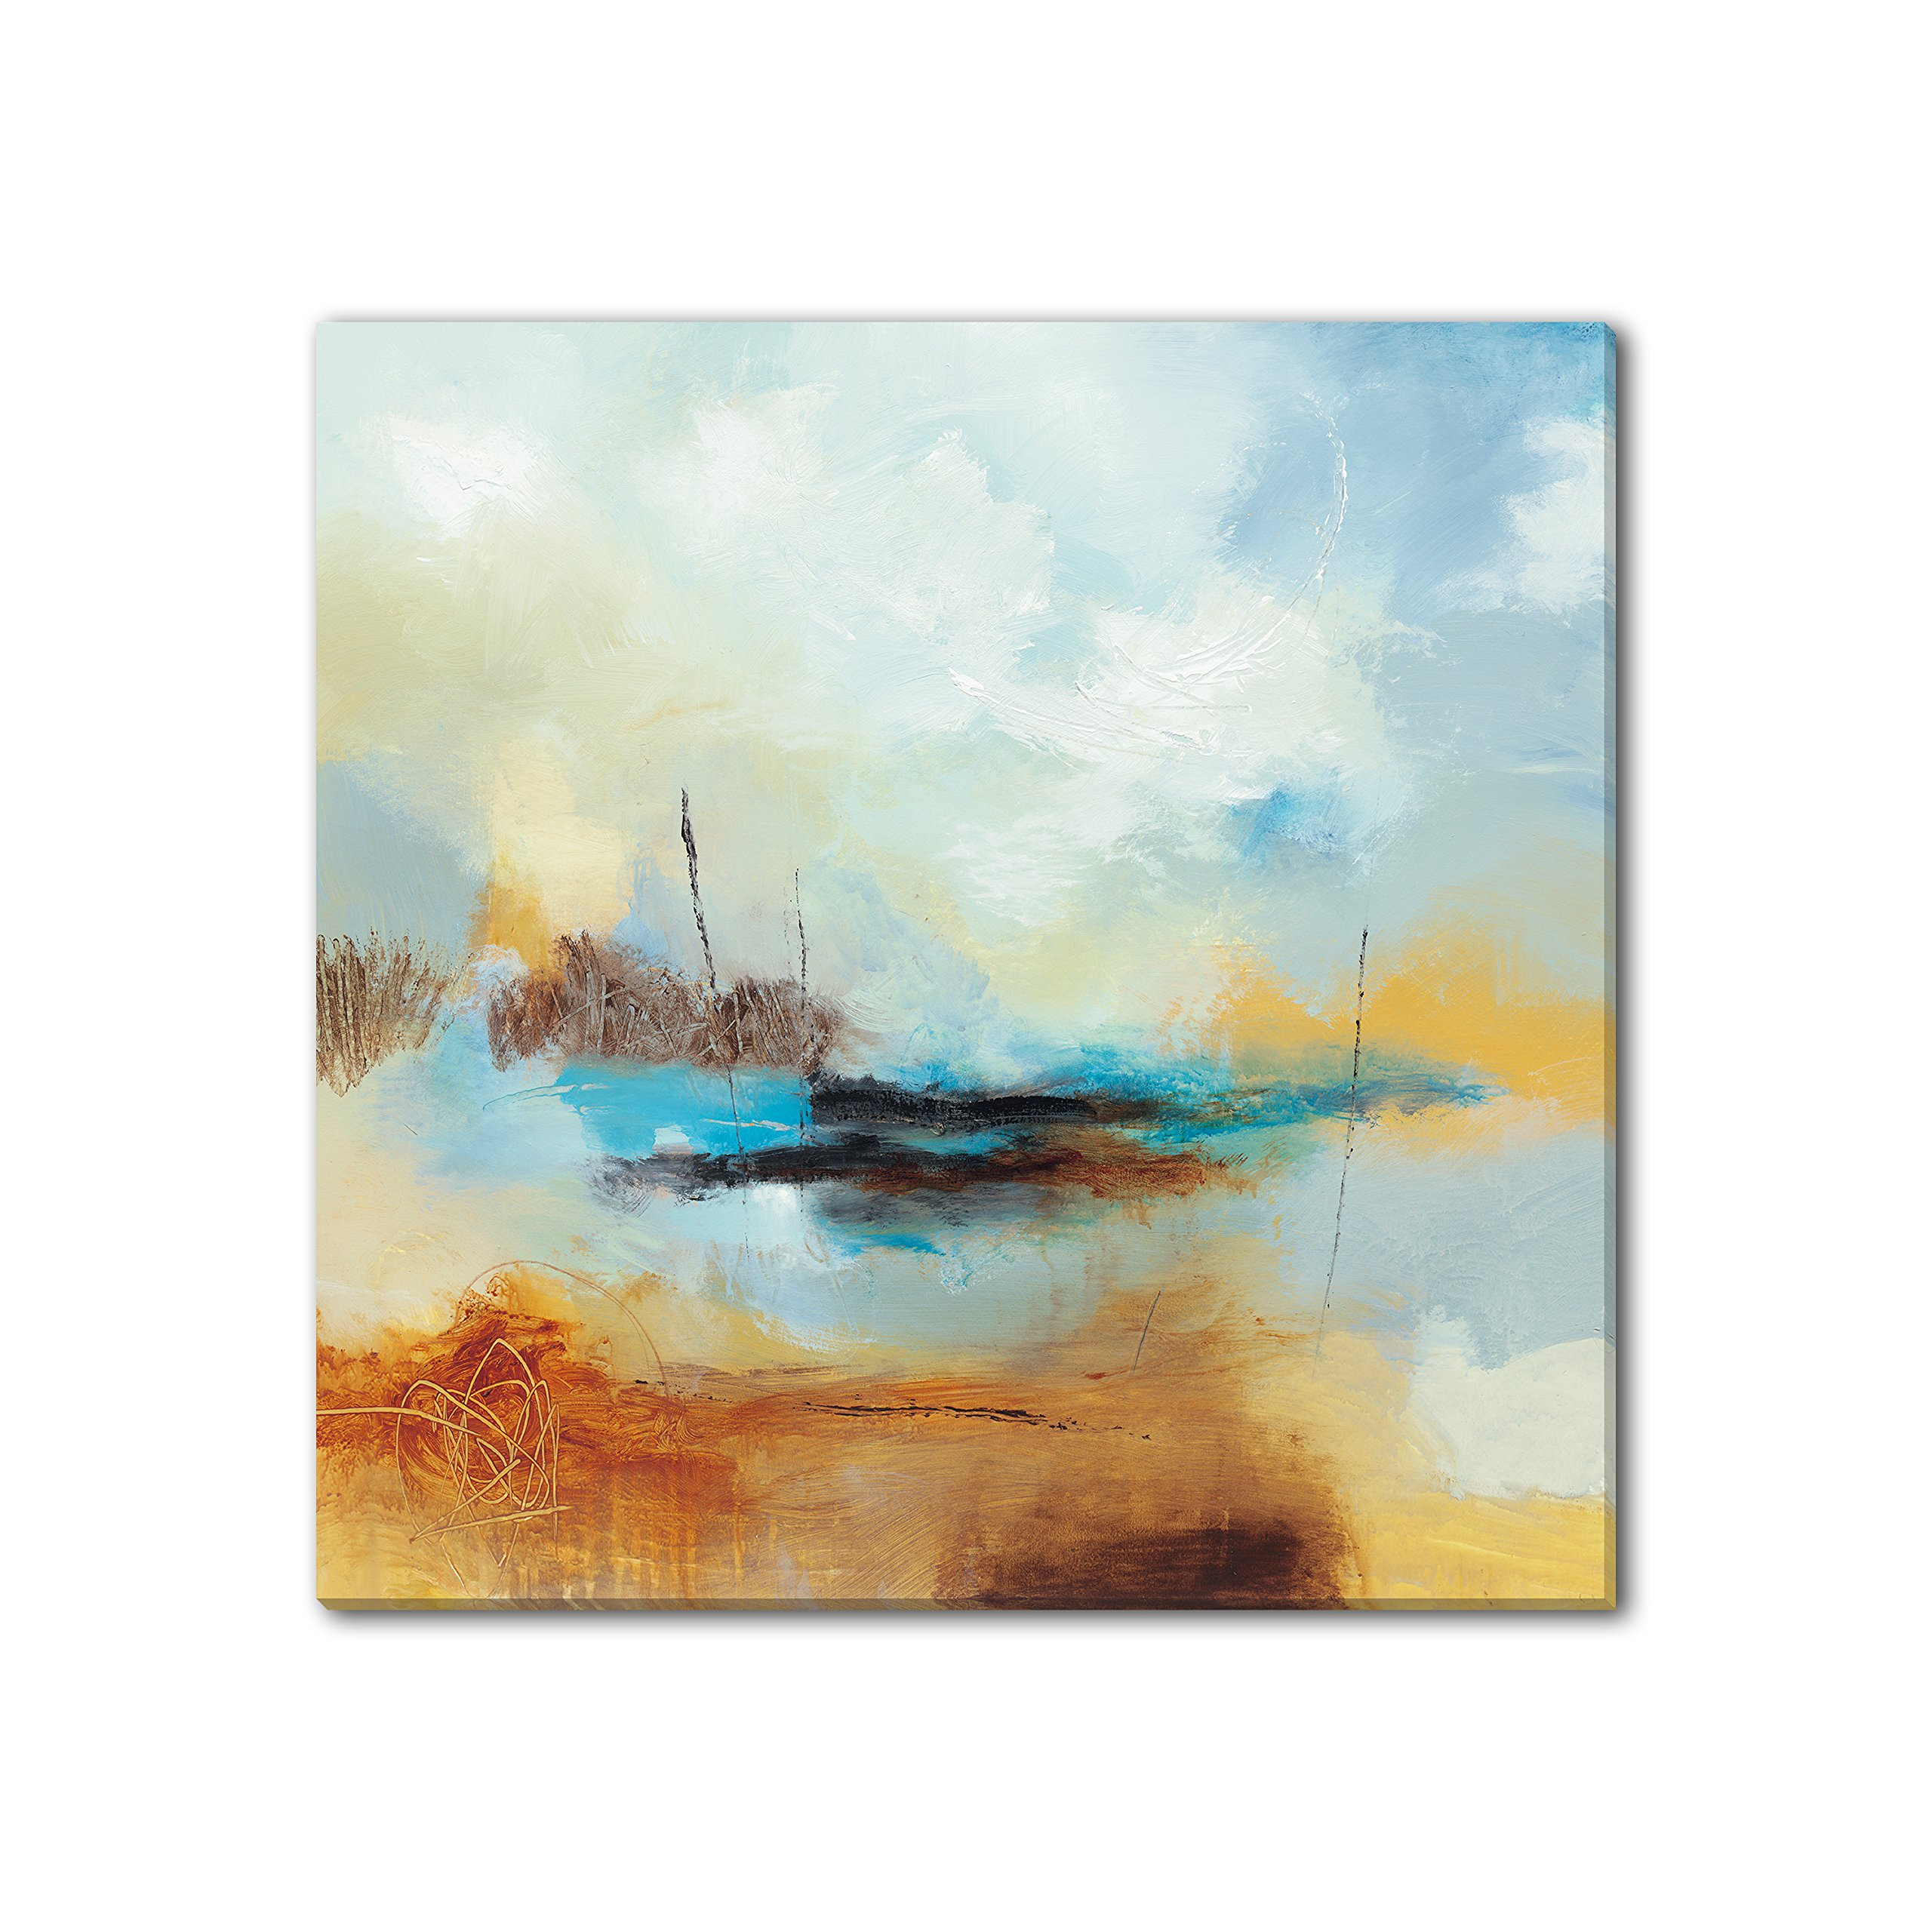 Gallery Direct 'Desert Skies II' Canvas Gallery Wrap by Sean Jacobs, 40 by 40-Inch